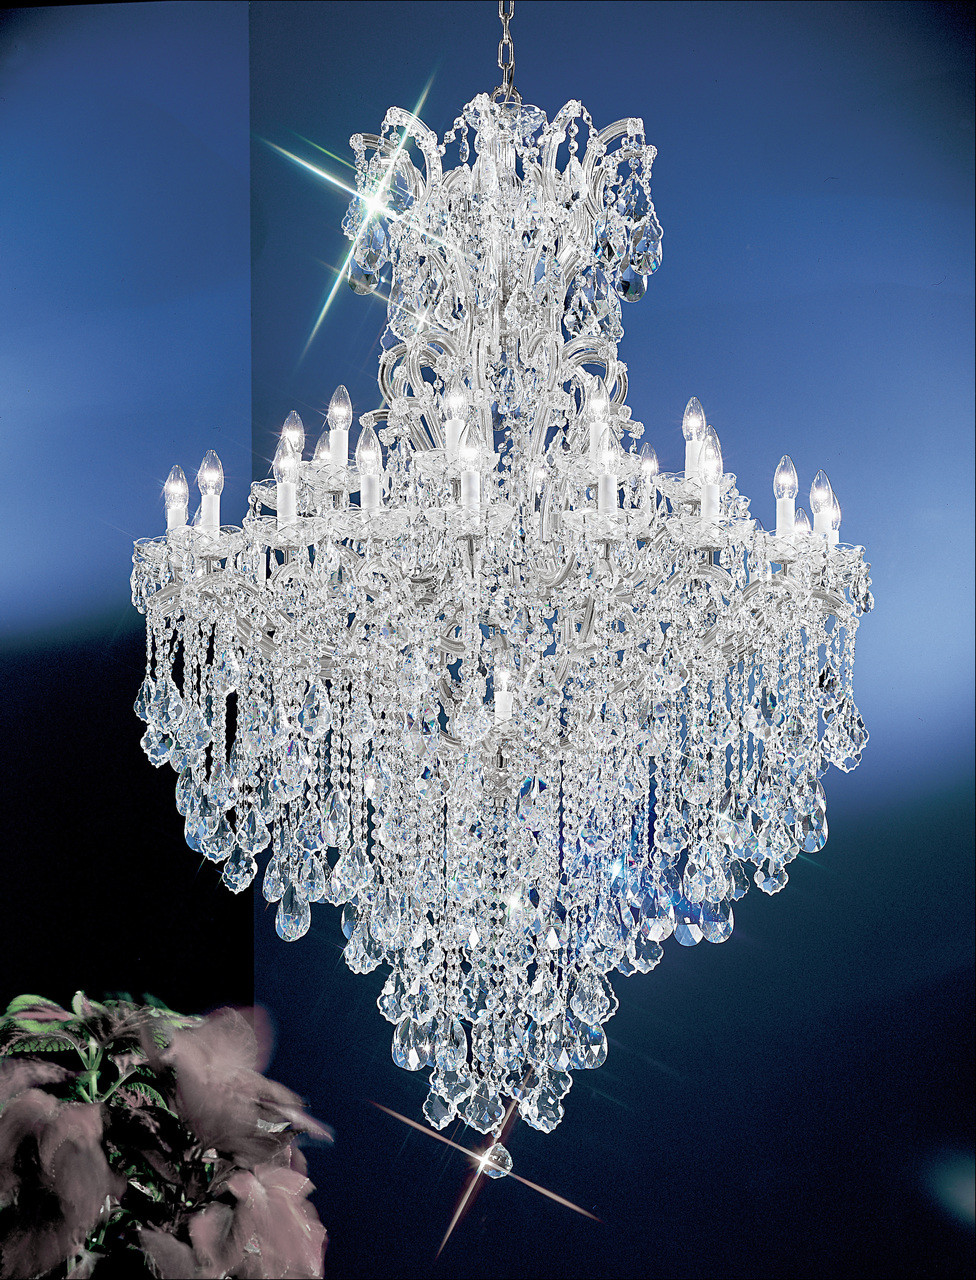 design classic lighting lamp classic lighting 8183 ch sc maria theresa traditional crystal chandelier in chrome imported from italy